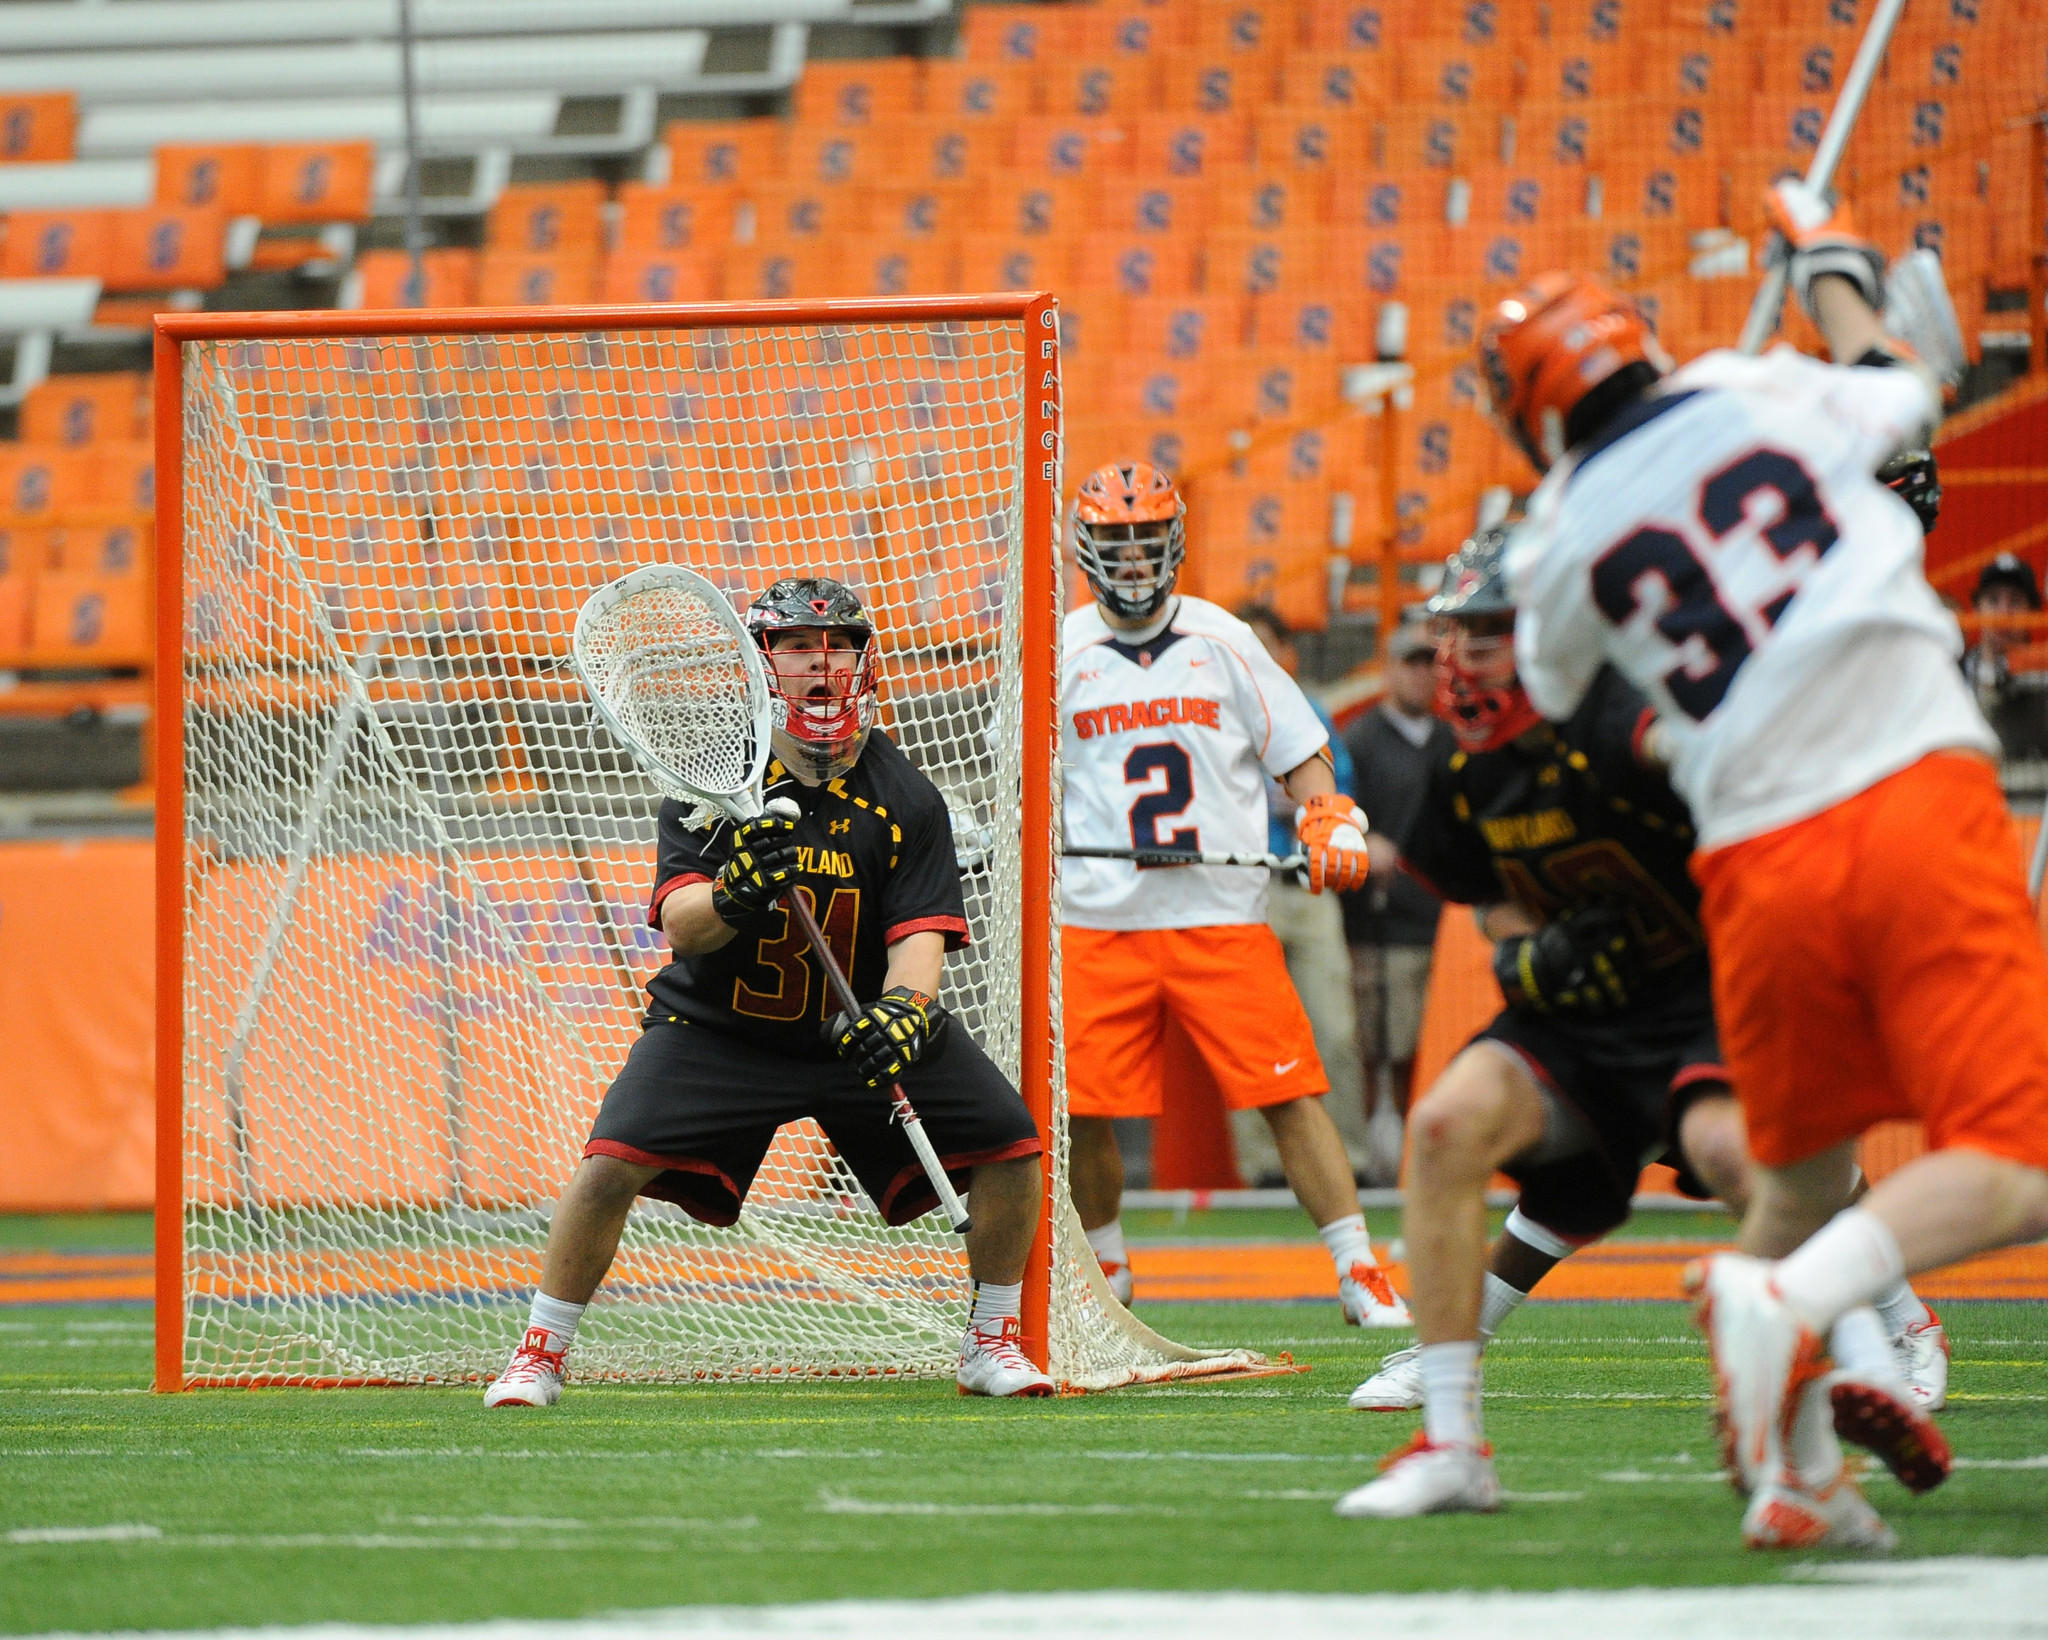 Maryland goalie Niko Amato was one of three Terps named to the 2014 Tewaaraton Award Watch List.